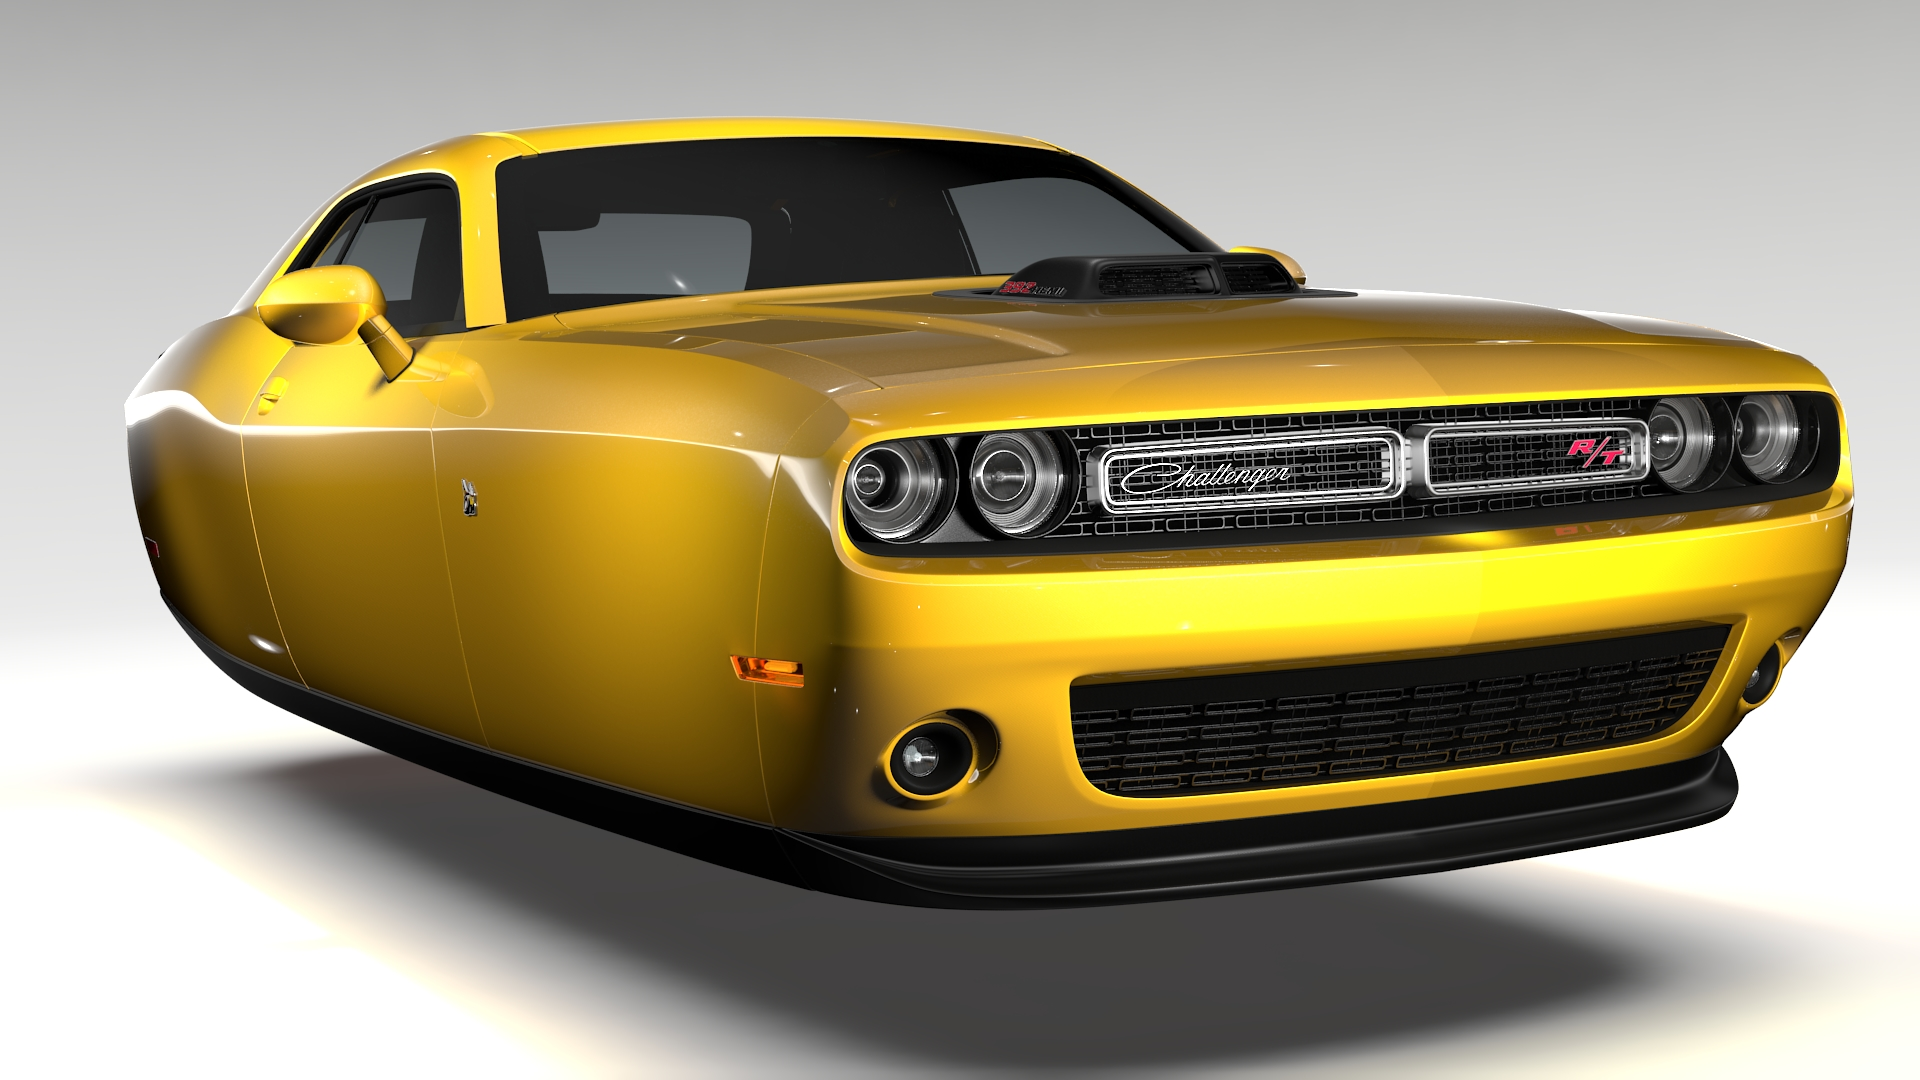 dodge challenger 392 shaker (lc) 2016 flying 3d model 3ds max fbx c4d lwo ma mb hrc xsi obj 220596